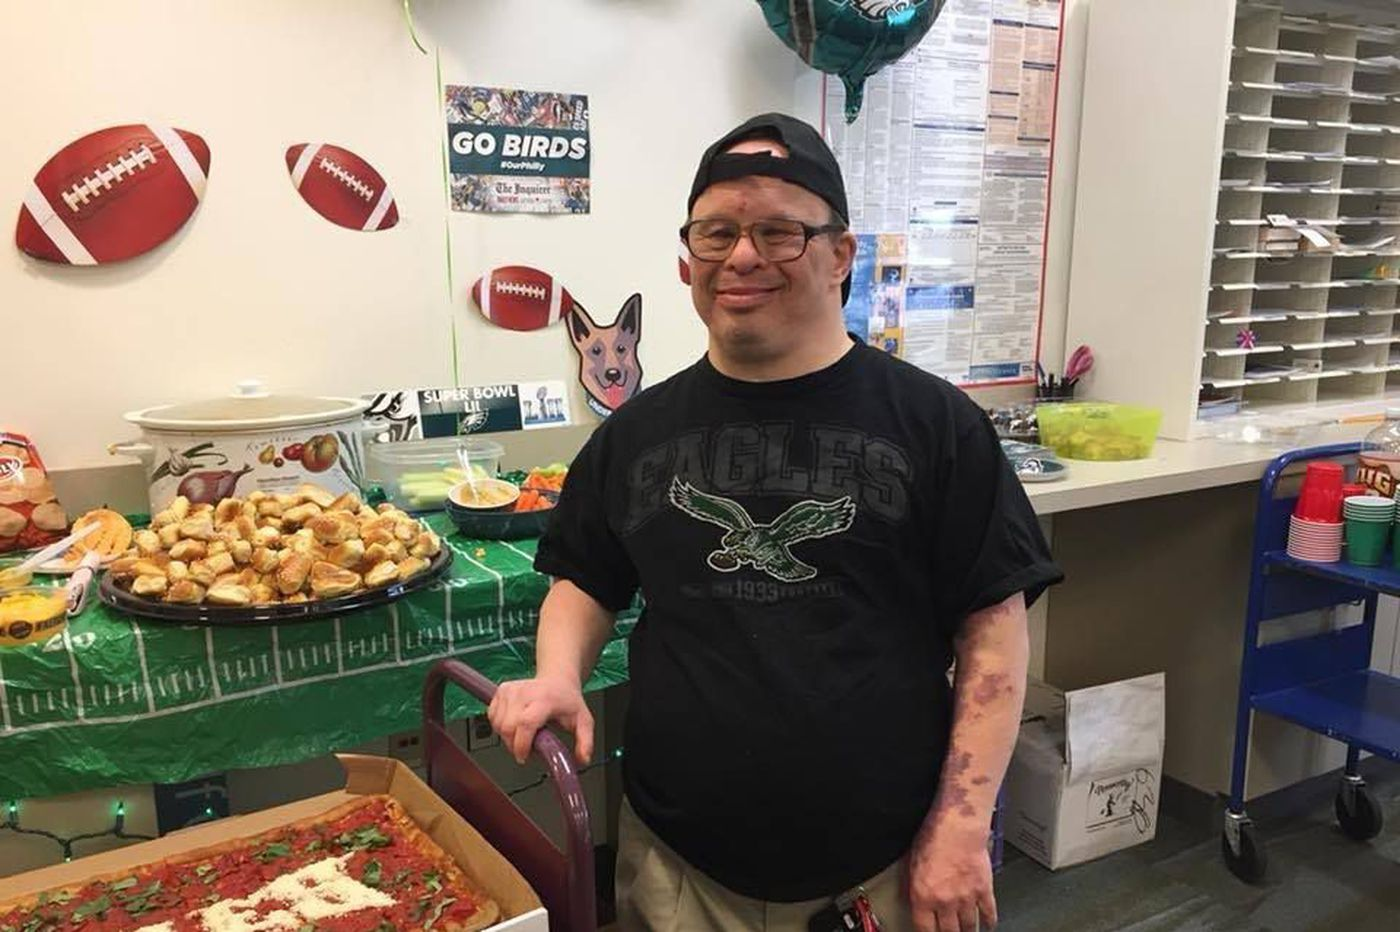 Death of Longtime Ludington Library Employee with Down Syndrome Leaves Huge Hole In Lower Merion Community